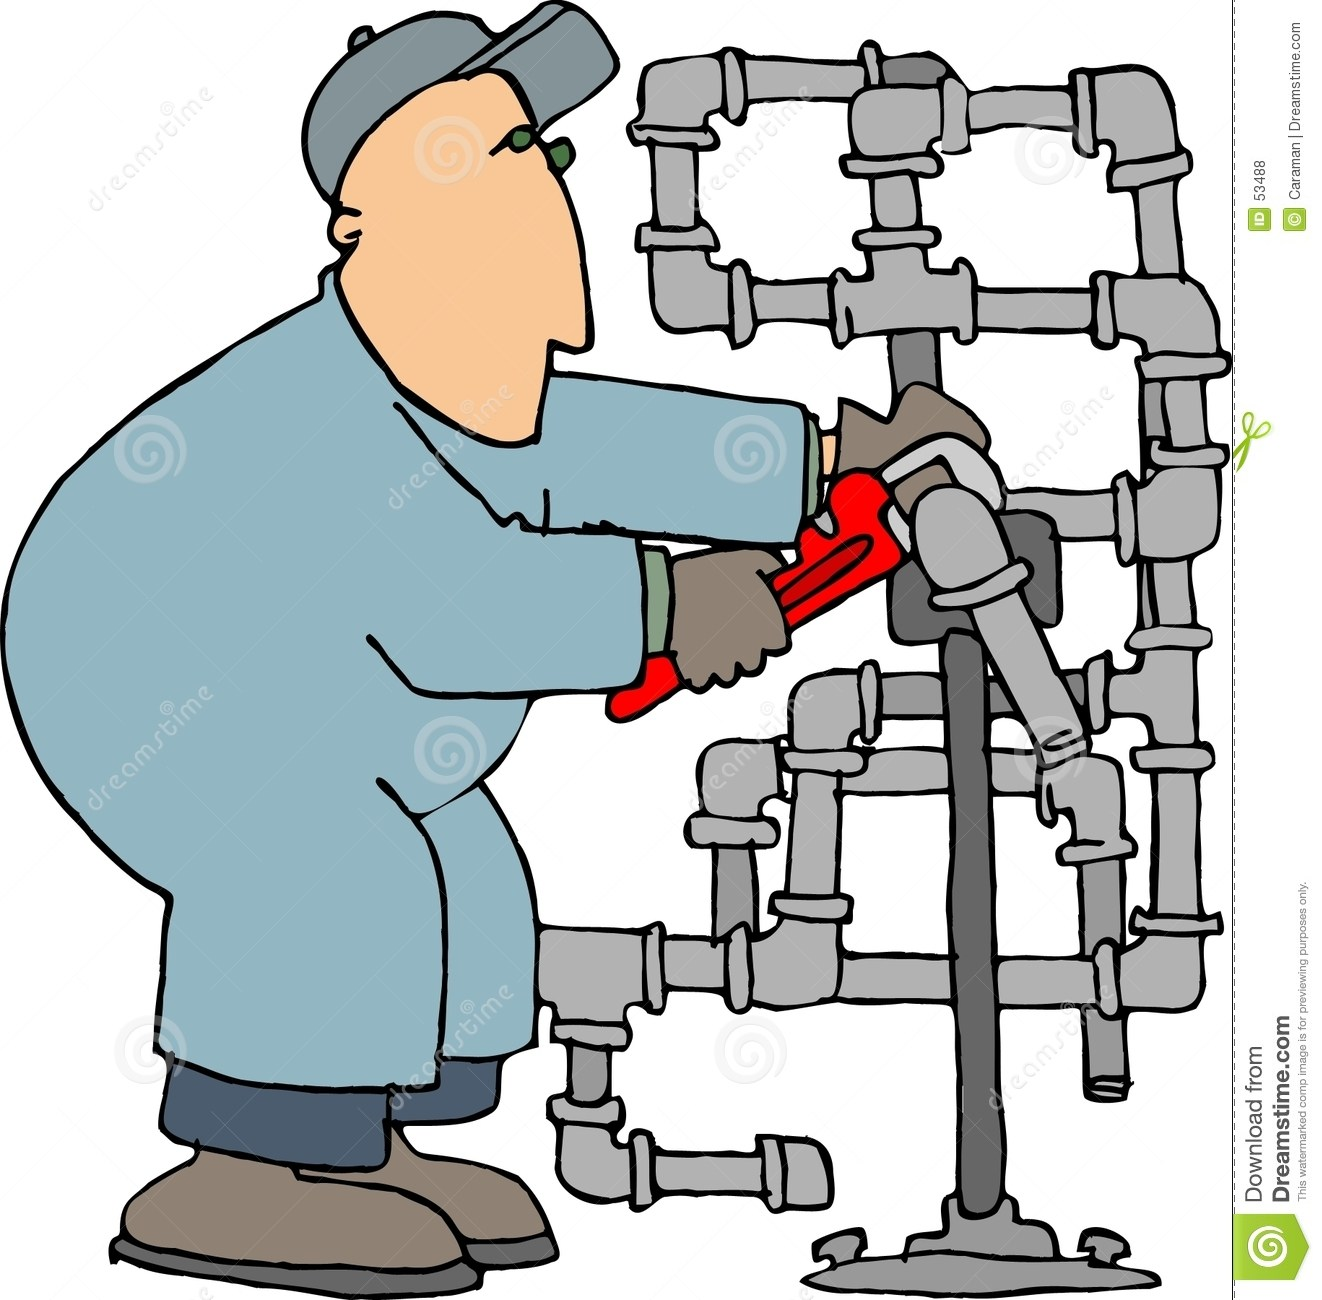 Pipefitter clipart 5 » Clipart Portal.